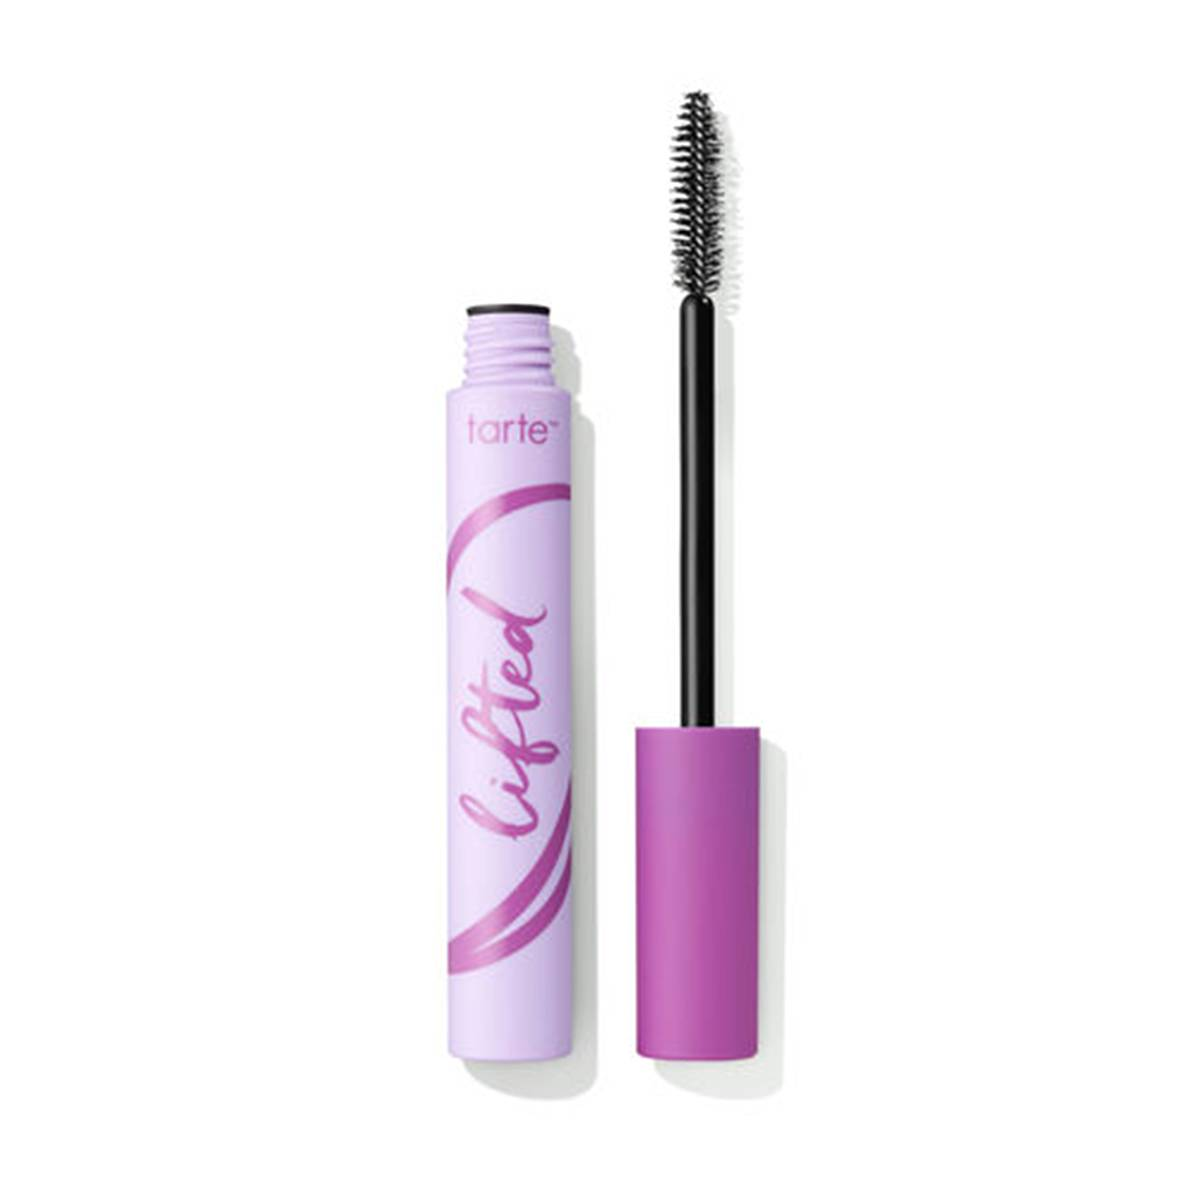 the-best-waterproof-mascara-253695-1522600910765-main.1200x0c.jpg